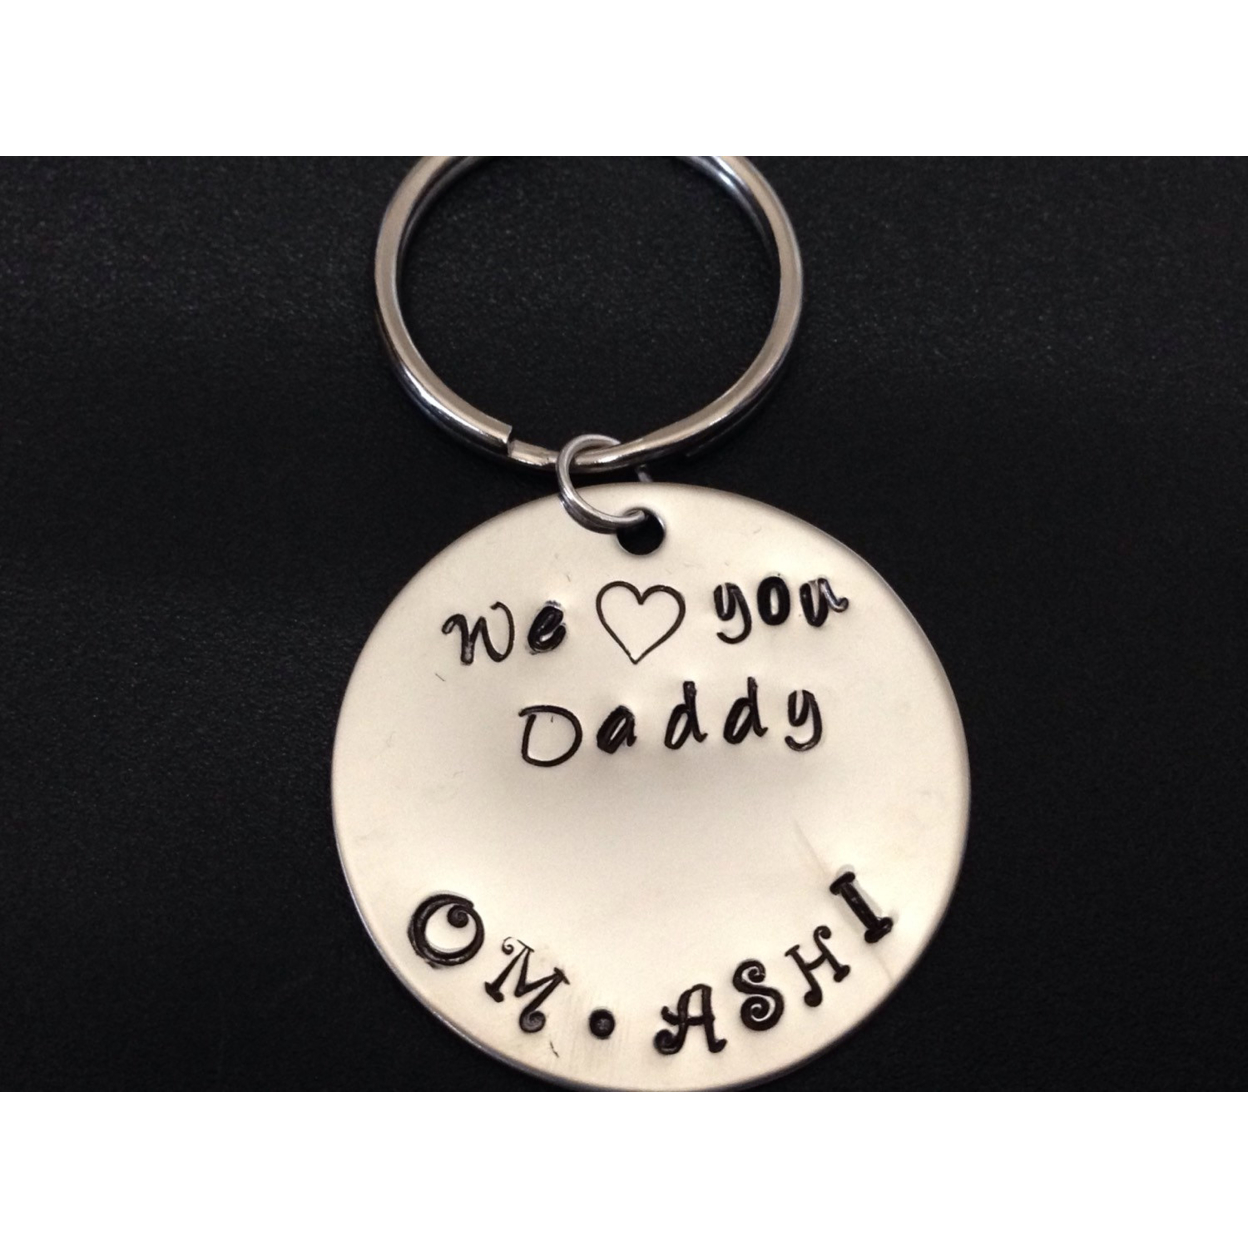 Personalized Hand Stamped Key Chain, We Love You Daddy Personalized With Childrens Names Hand Stamped Key ChainGreat For Fathers Day